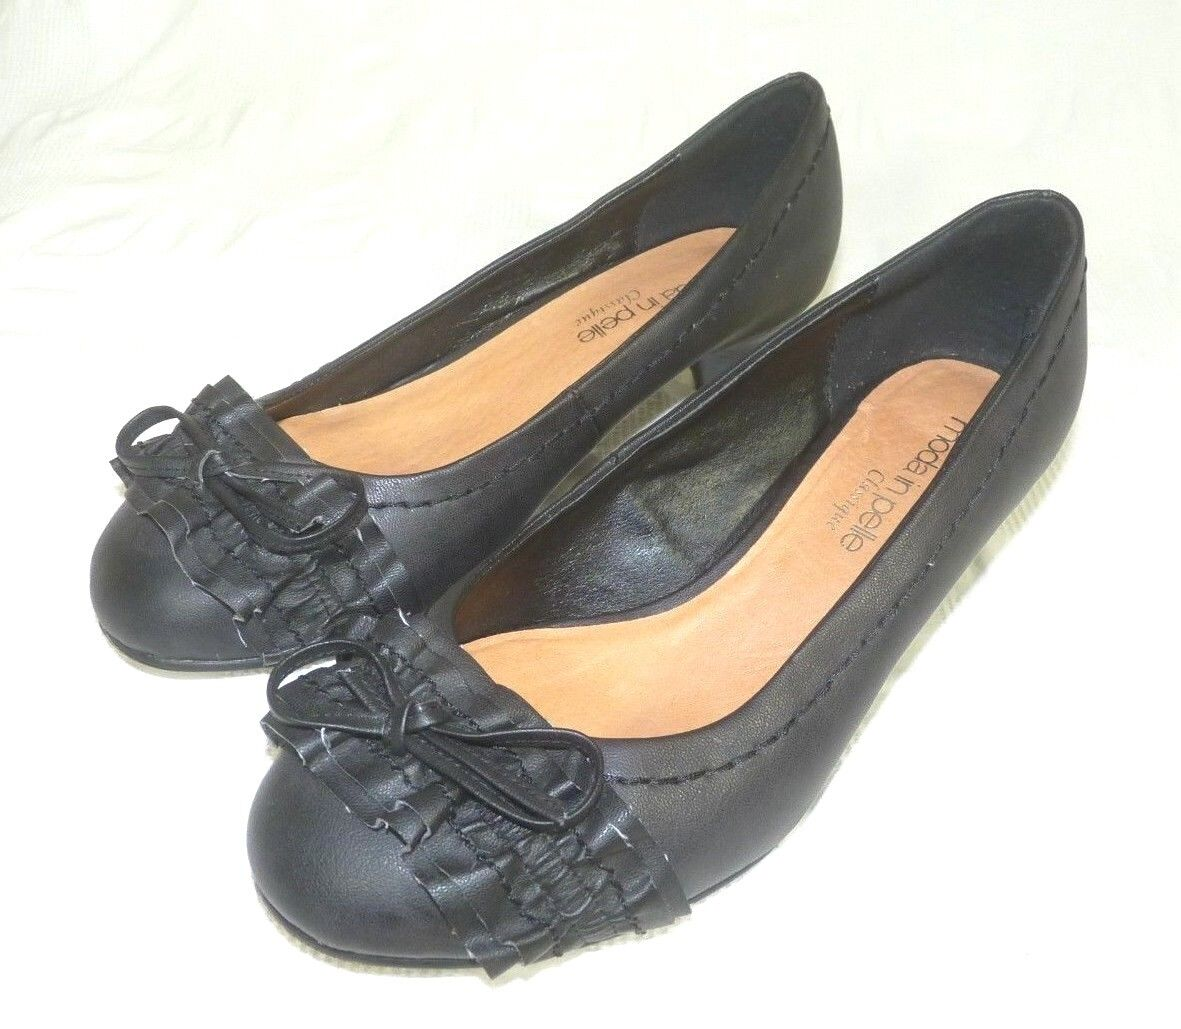 Moda In Pelle Ladies On Womens Black Court Slip On Ladies Shoes with Bow Size 34575a